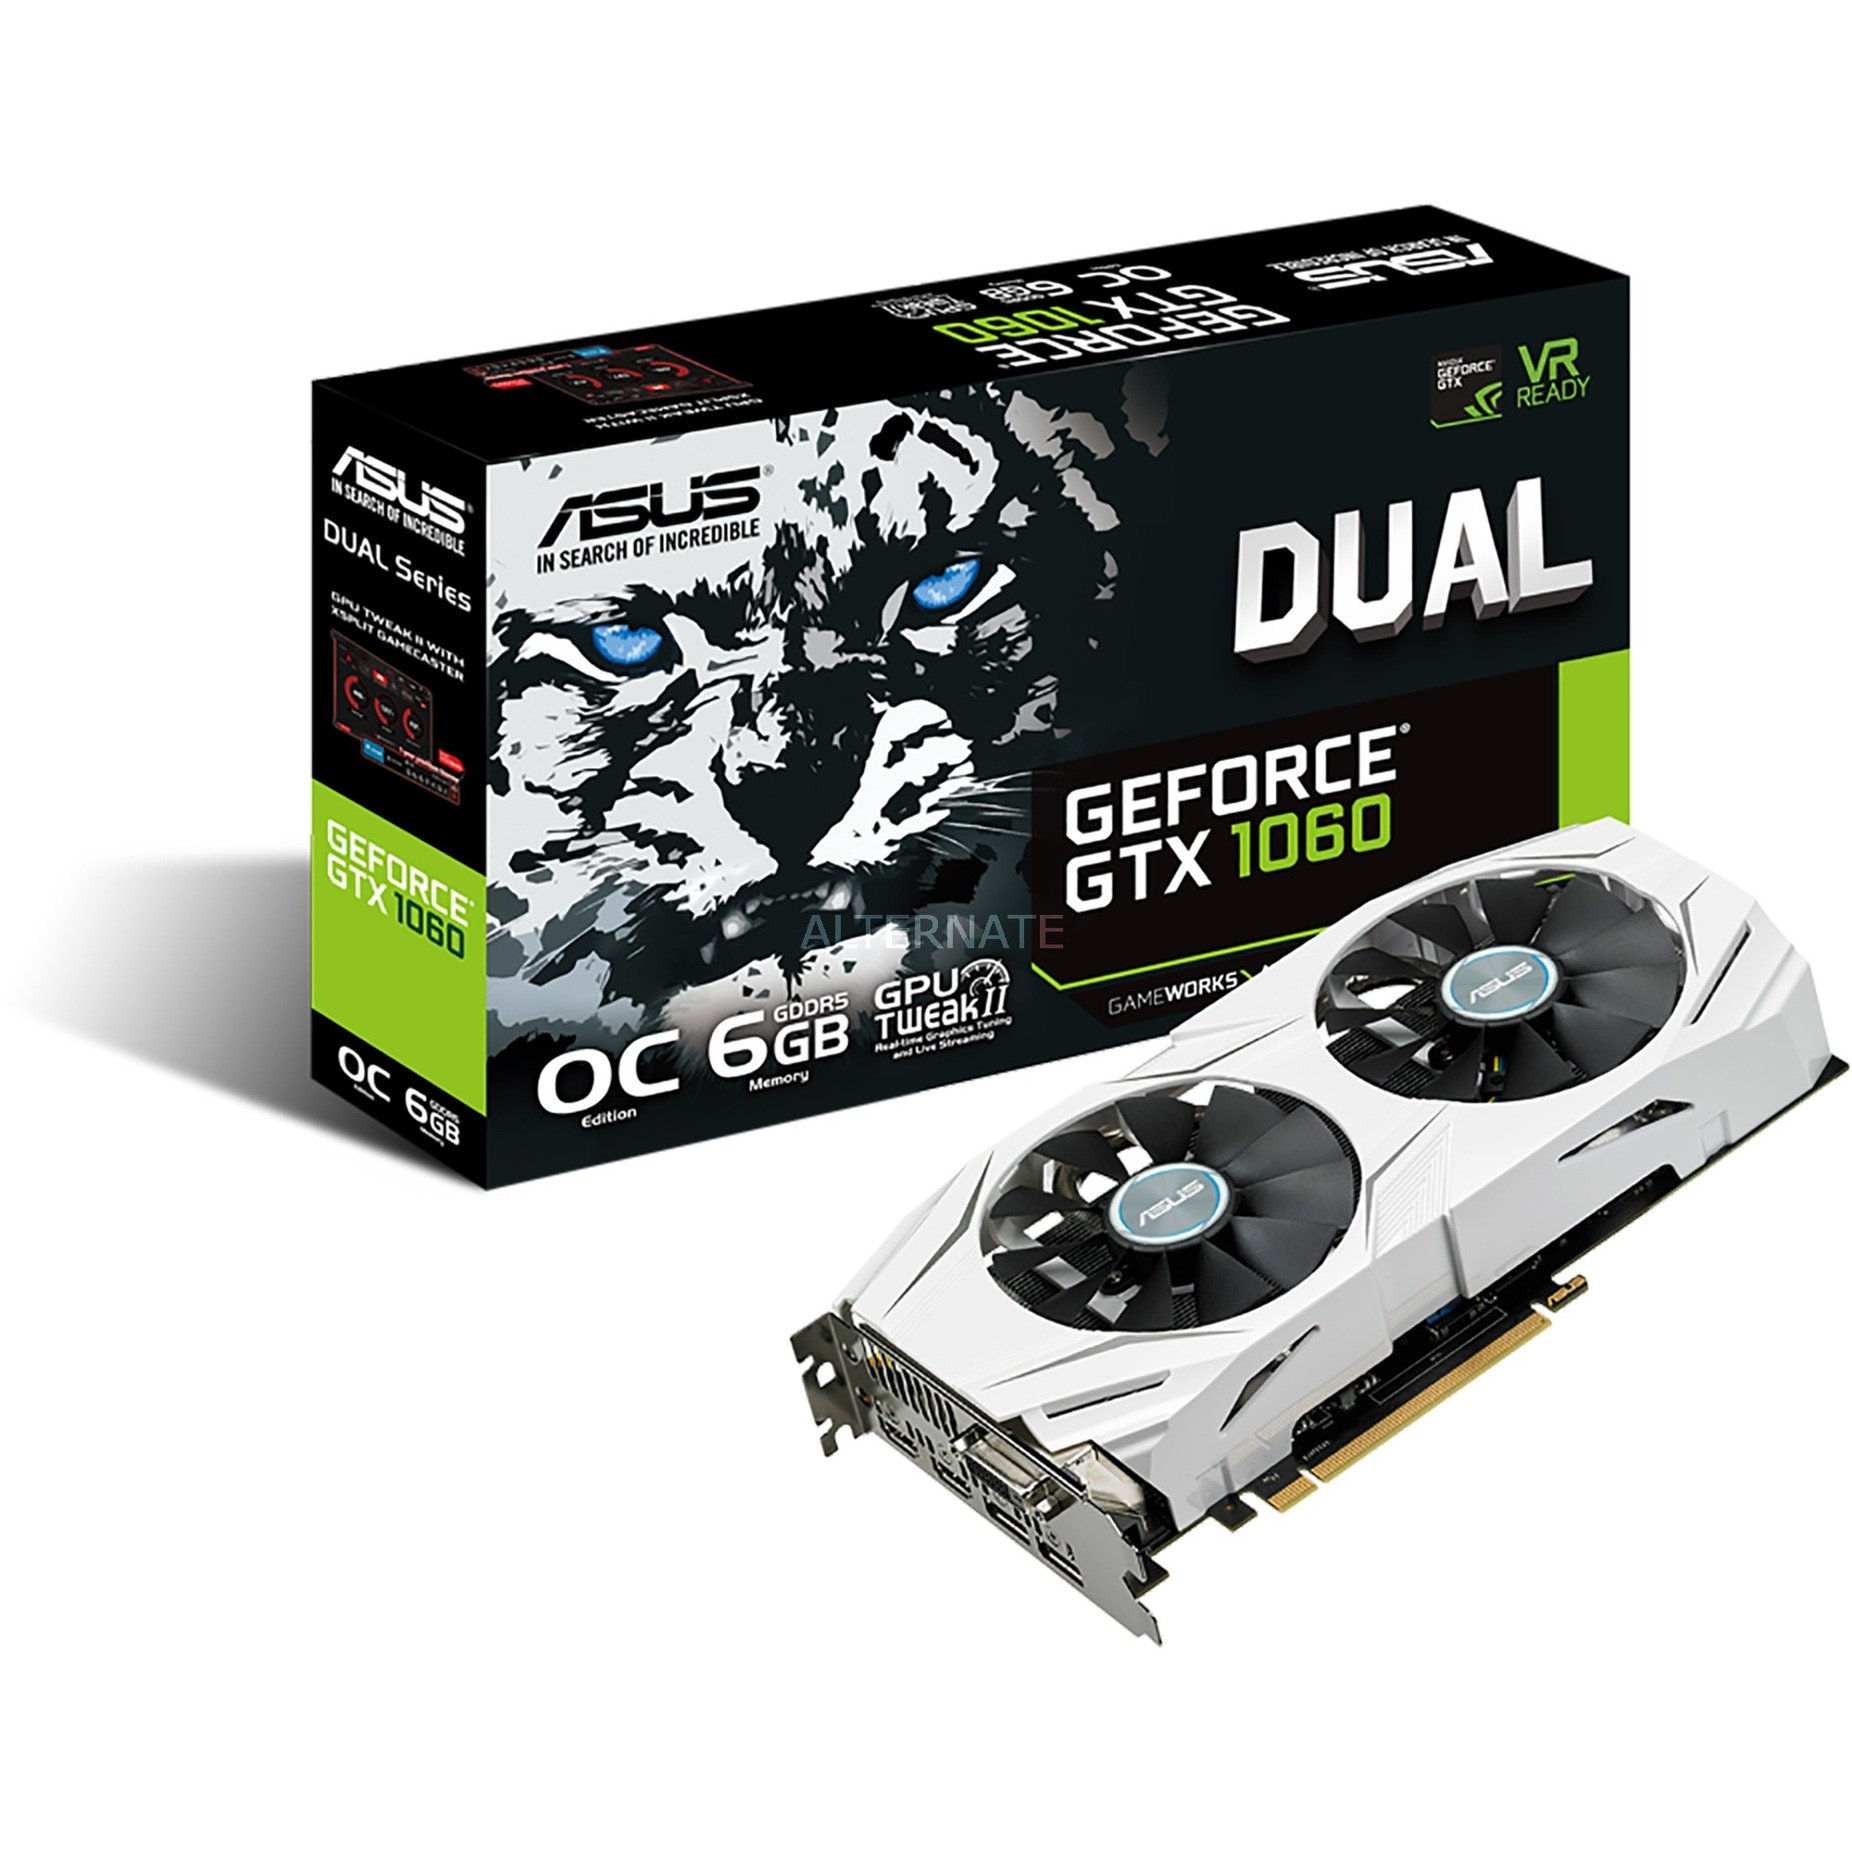 GeForce GTX 1060 DUAL O6G, Carte graphique